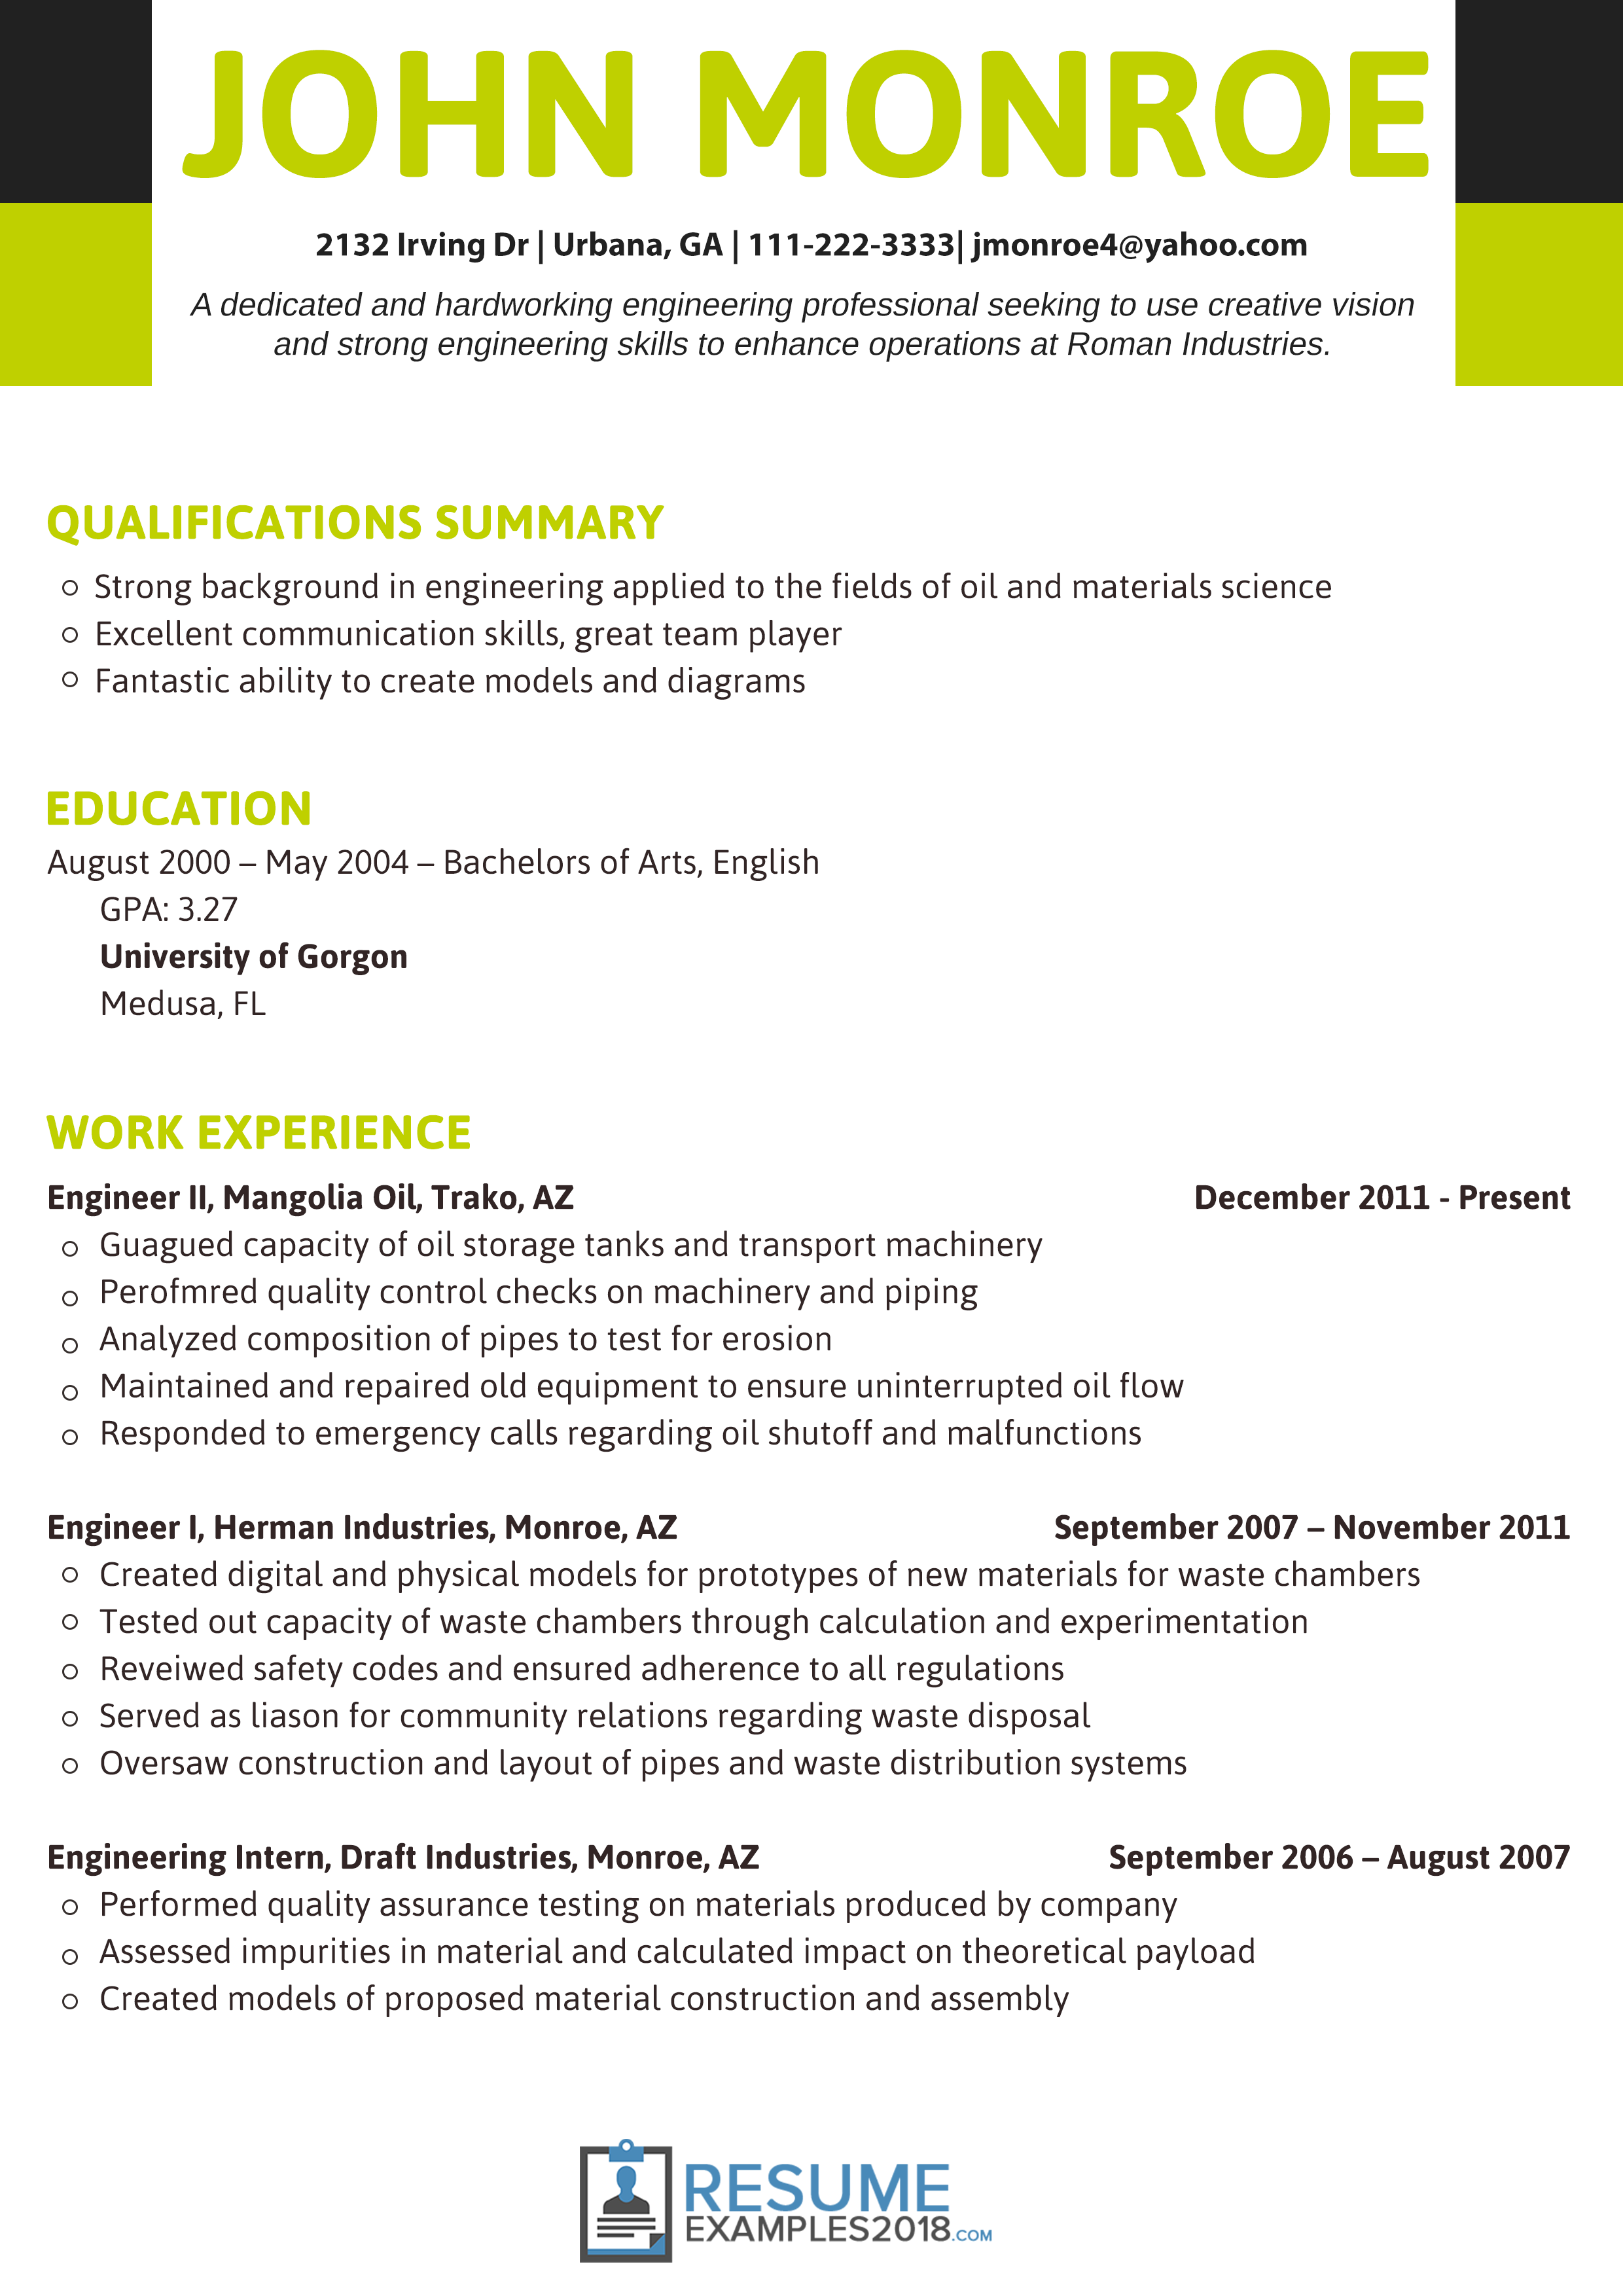 piping layout engineer resume resume format tips 2018 in 2020 resume examples  professional  resume format tips 2018 in 2020